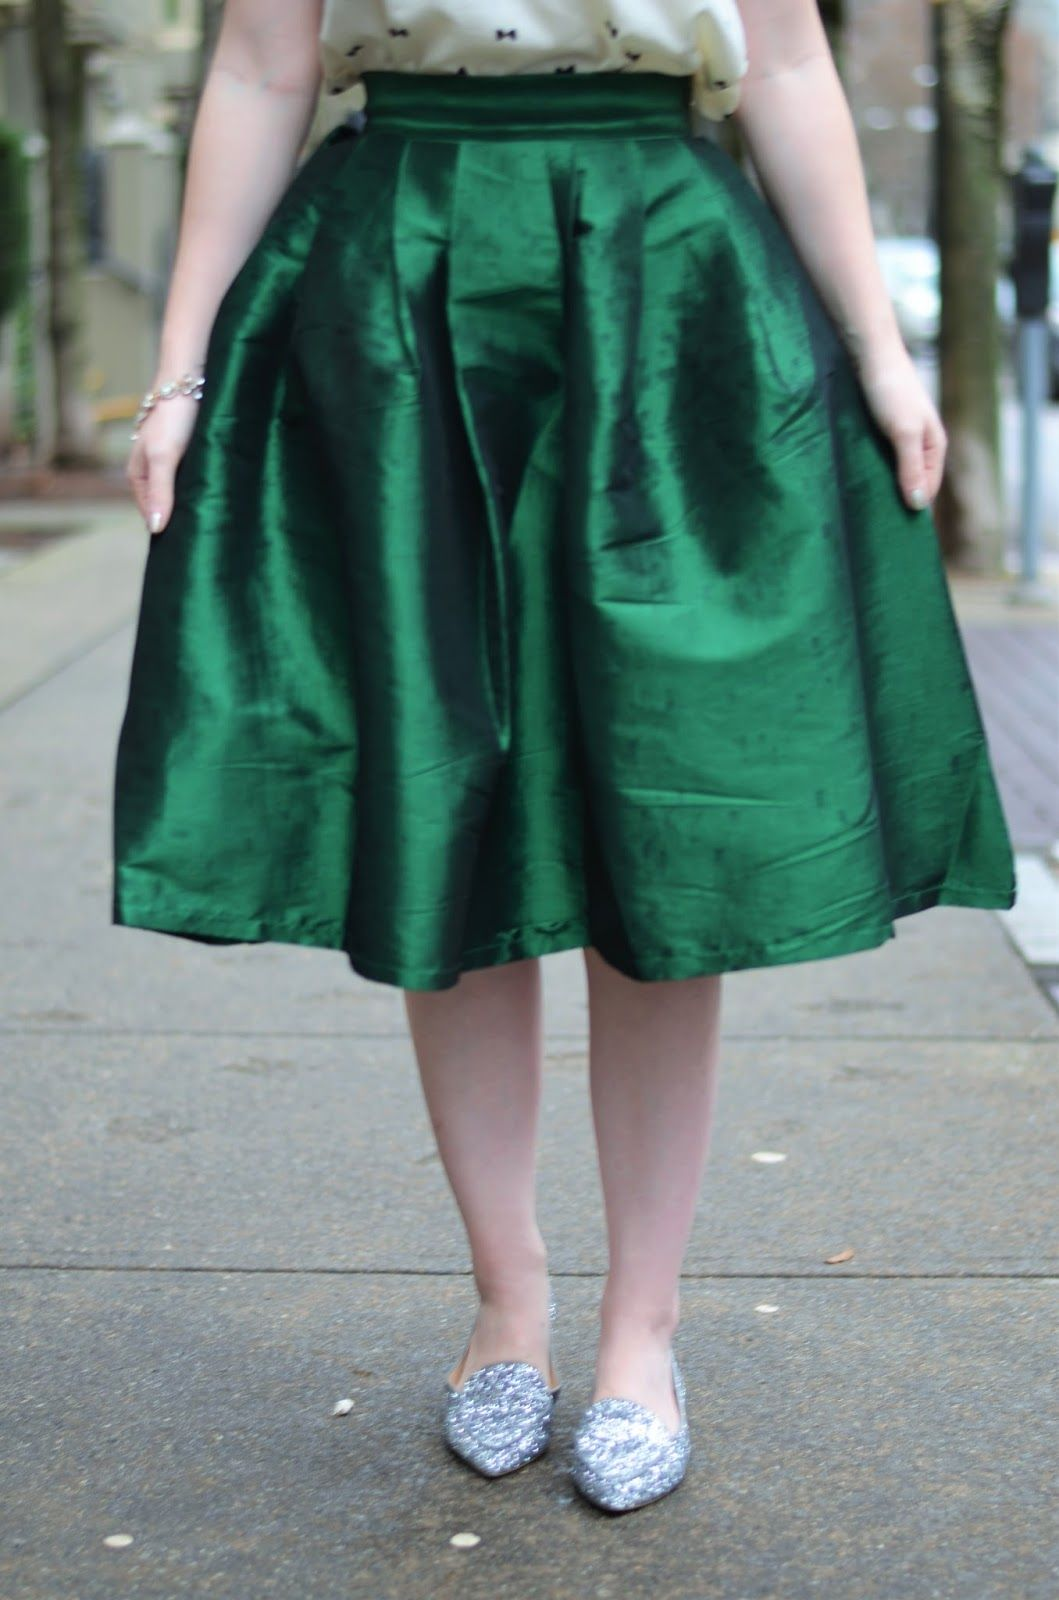 Vancouver Vogue: Holiday Outfit Inspiration - full green skirt @value